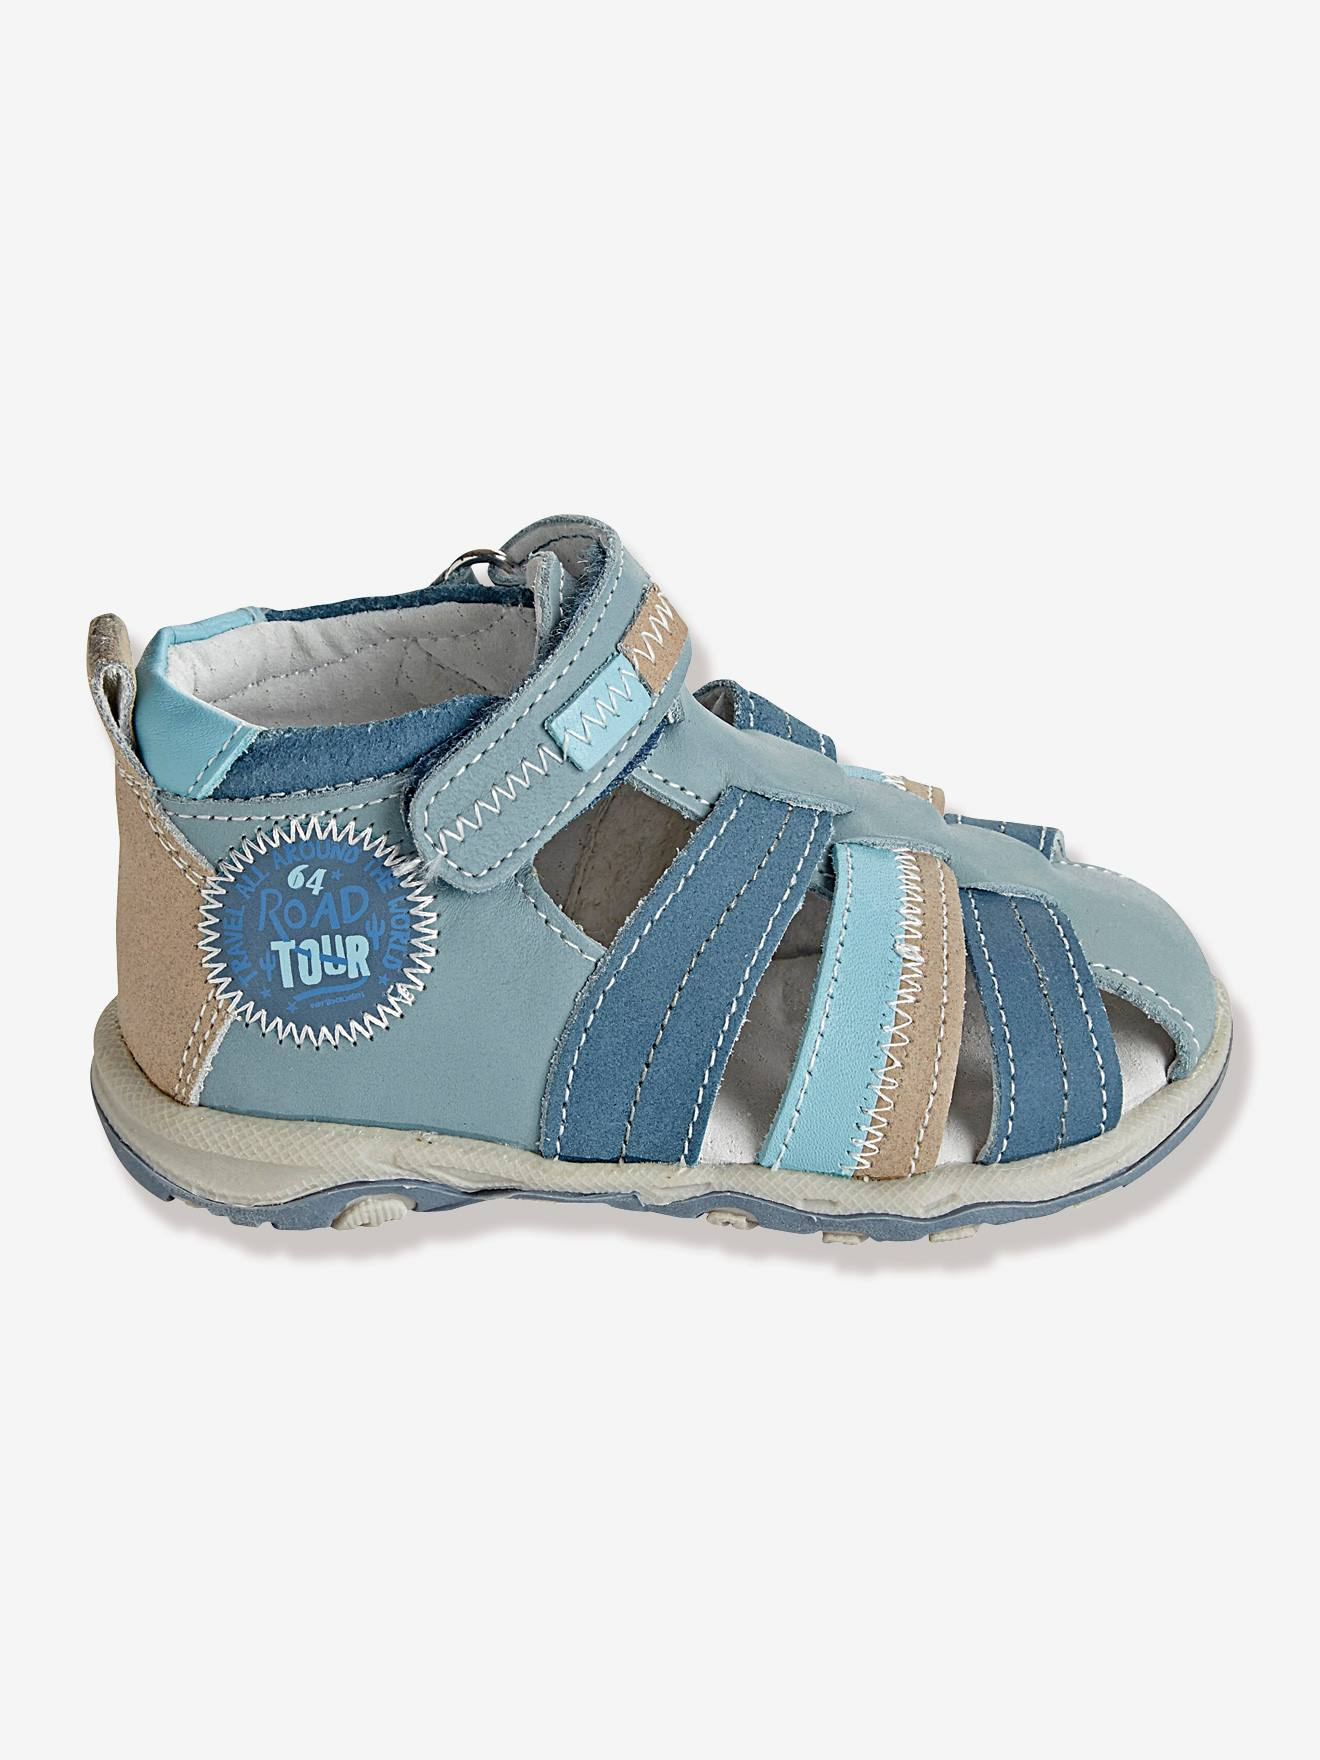 Boys Leather Sandals With Touch N Close Fastening Shoes